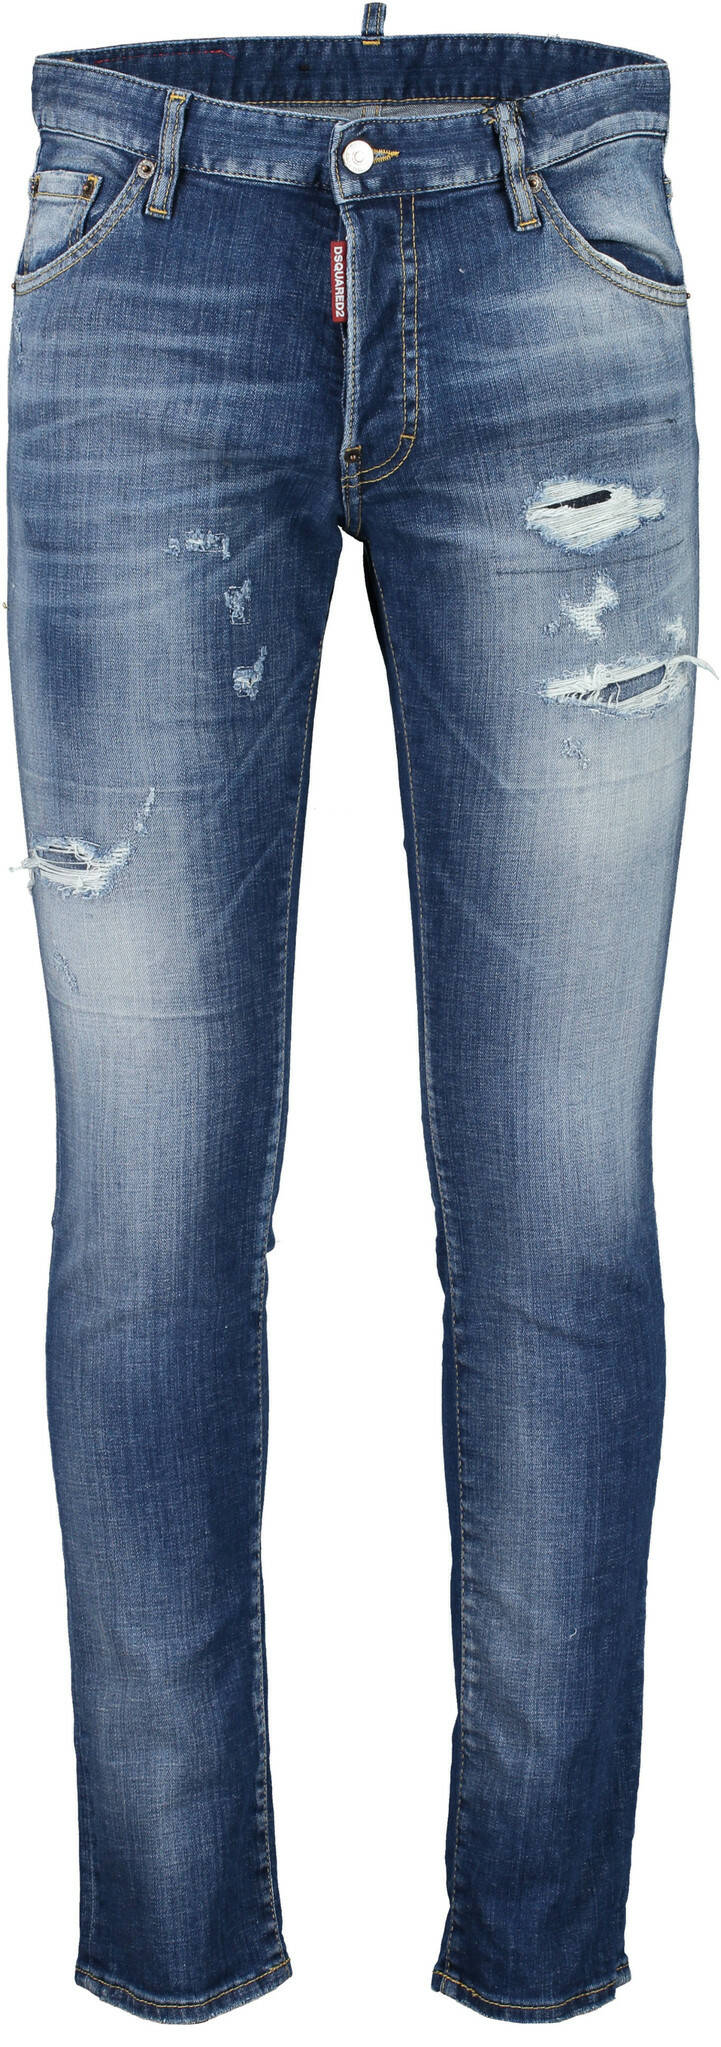 Dsquared2 jeans cool guy 872 SS21